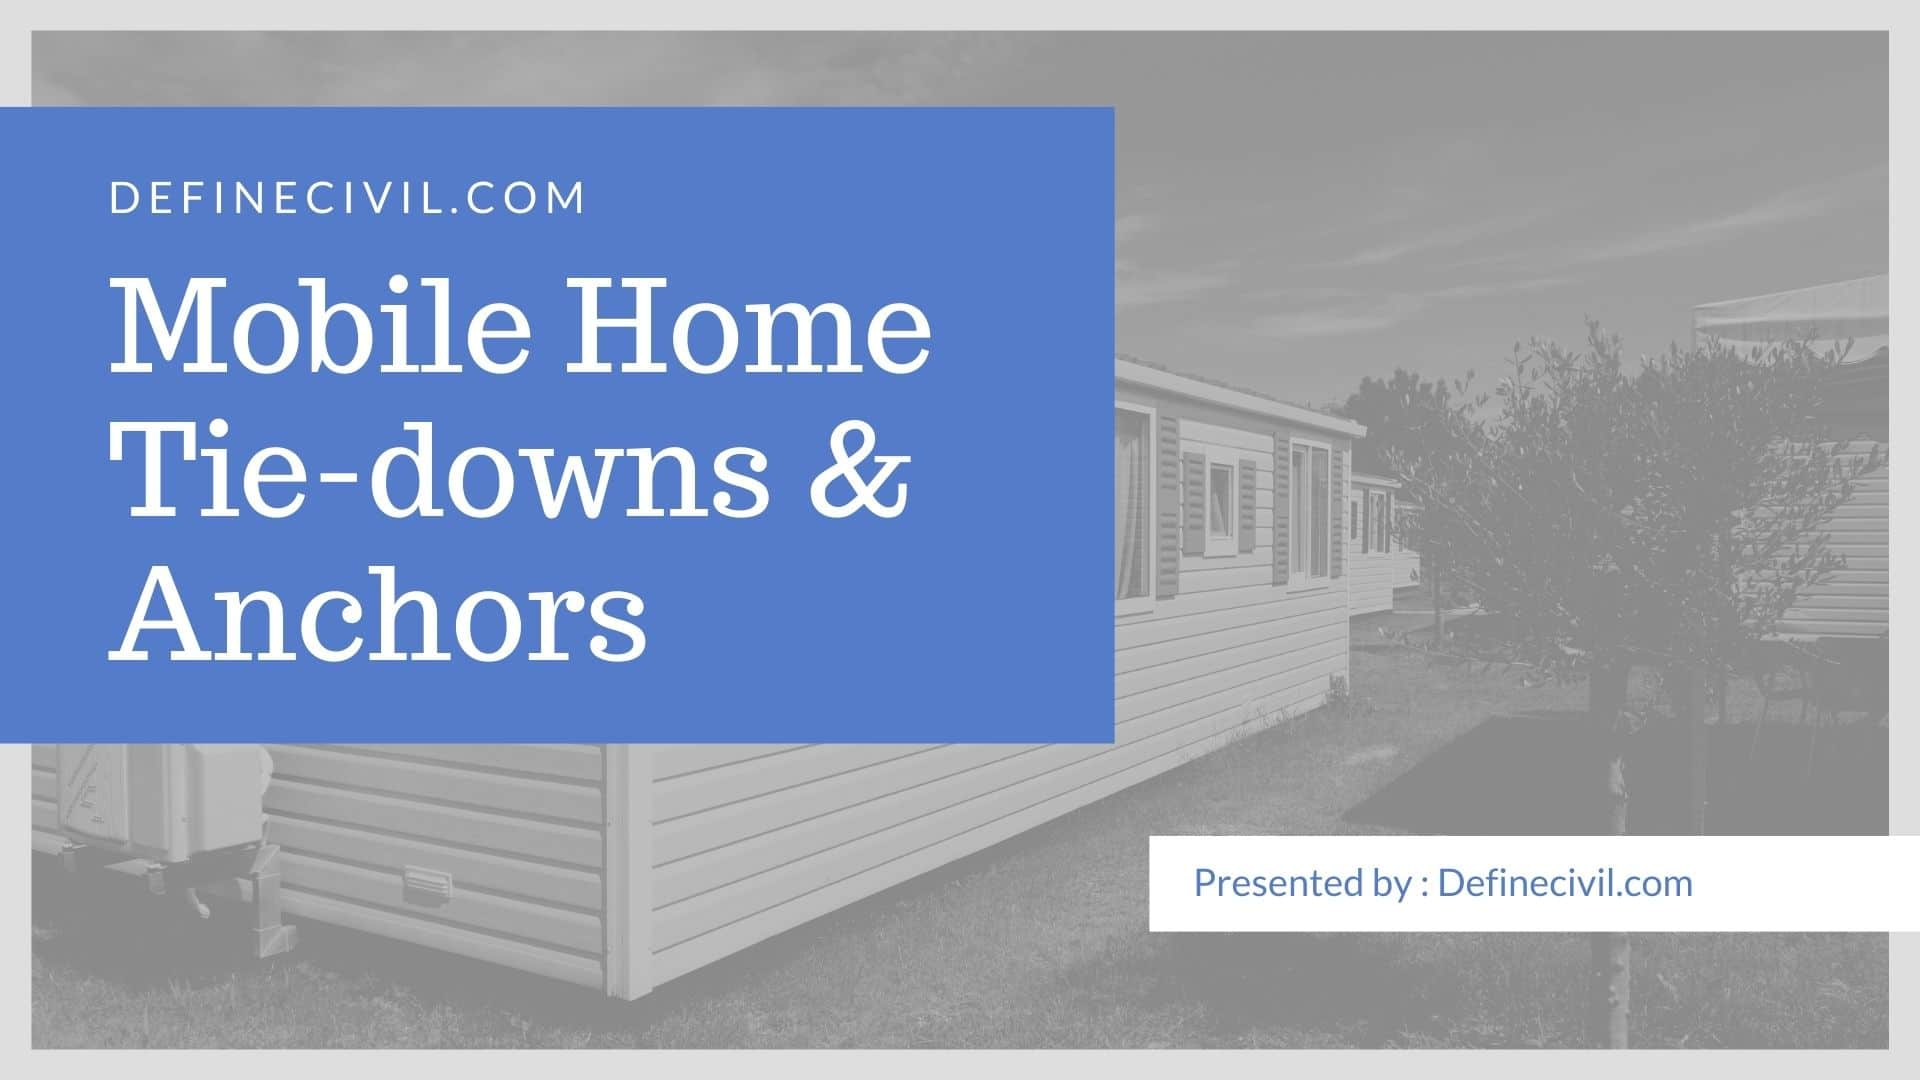 Tie downs and Anchors for Mobile Home